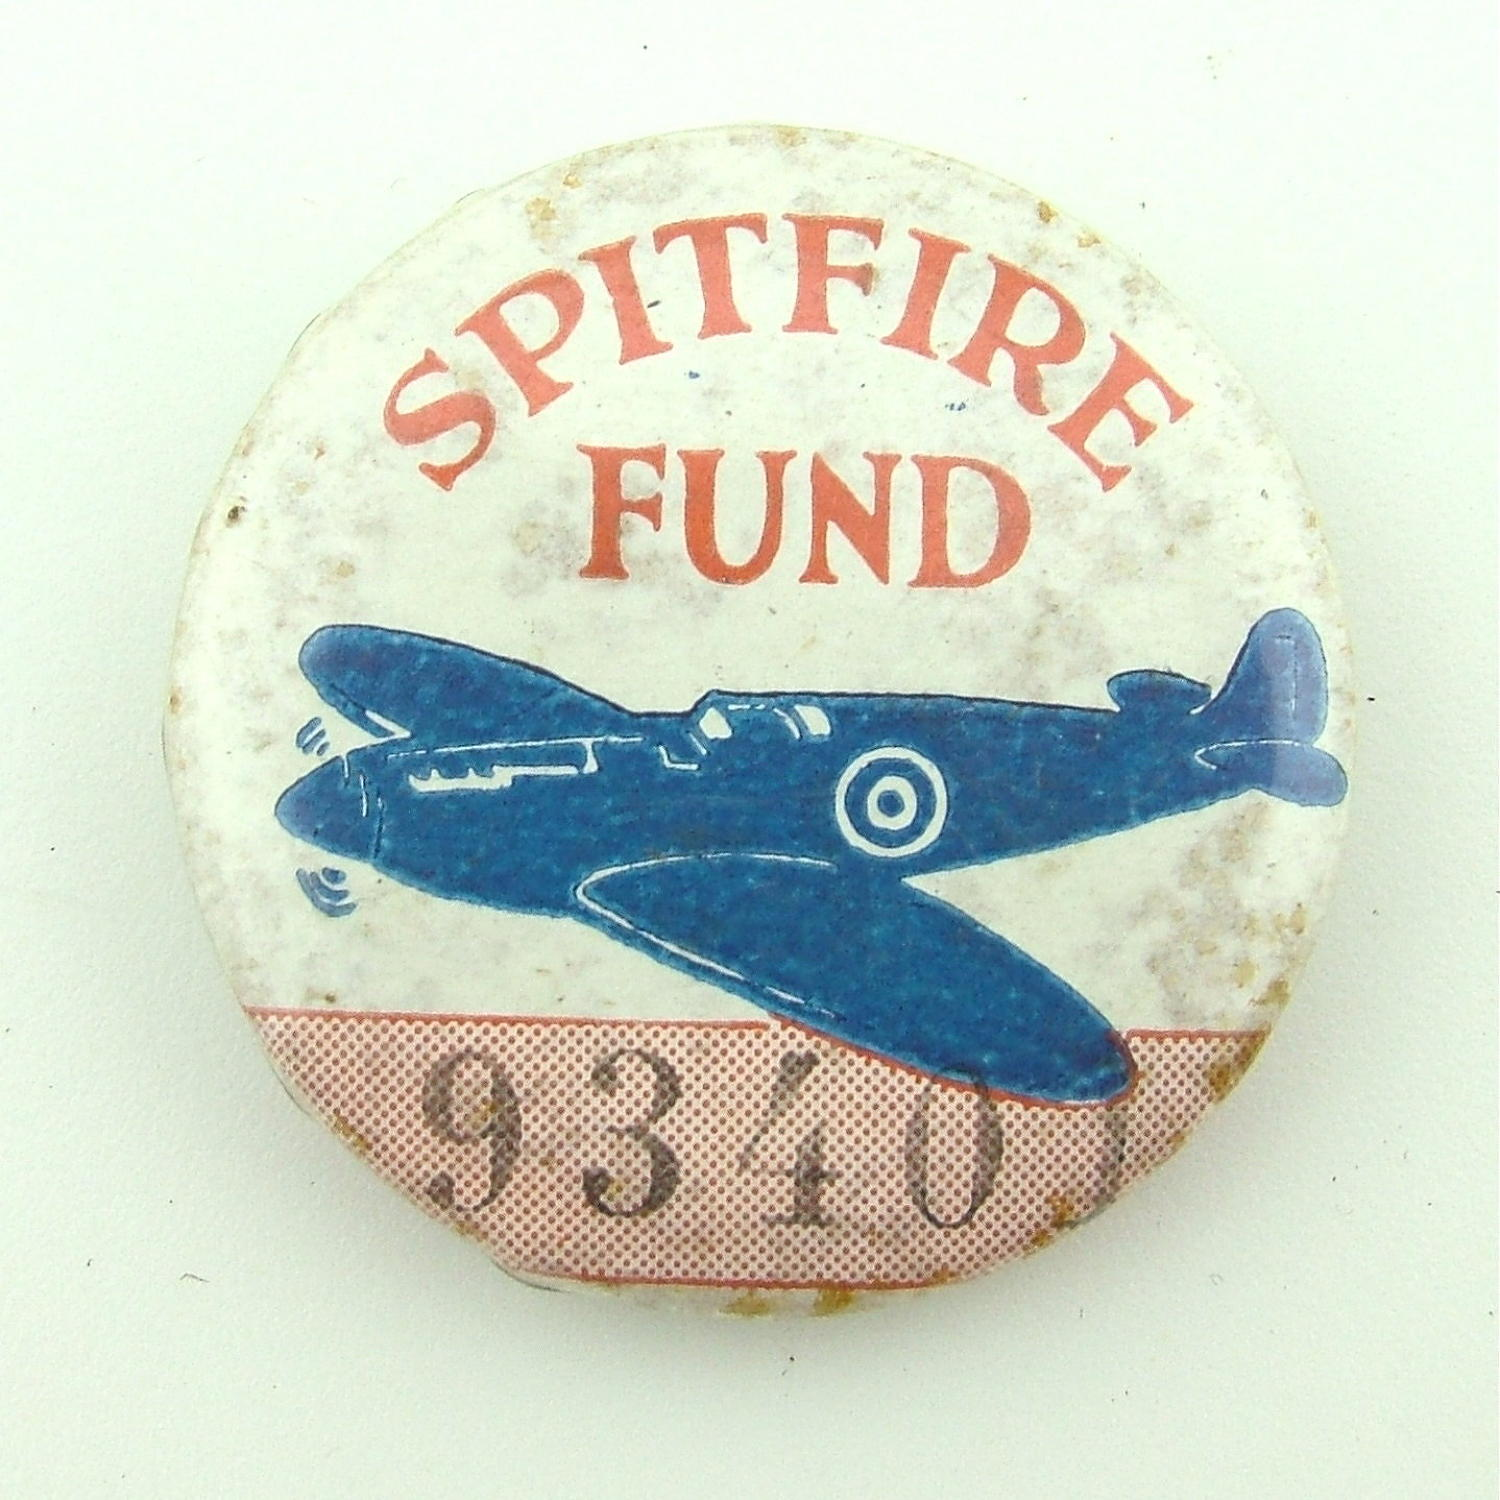 WW2 Spitfire fund badge